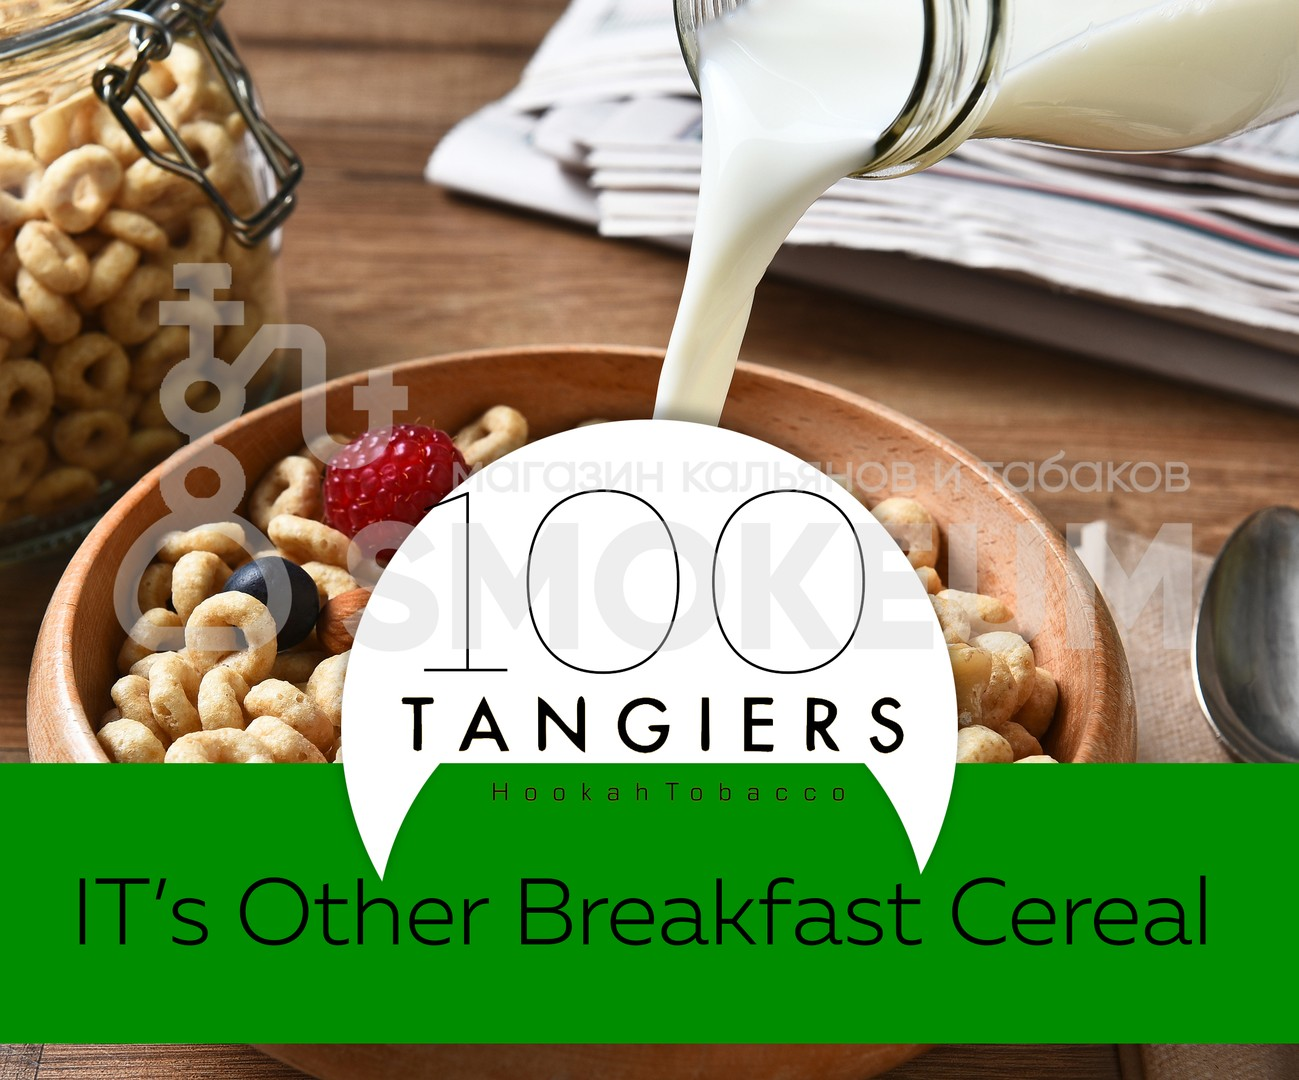 Табак Tangiers - IT's Other Breakfast Cereal (Другие хлопья на завтрак) 250 гр